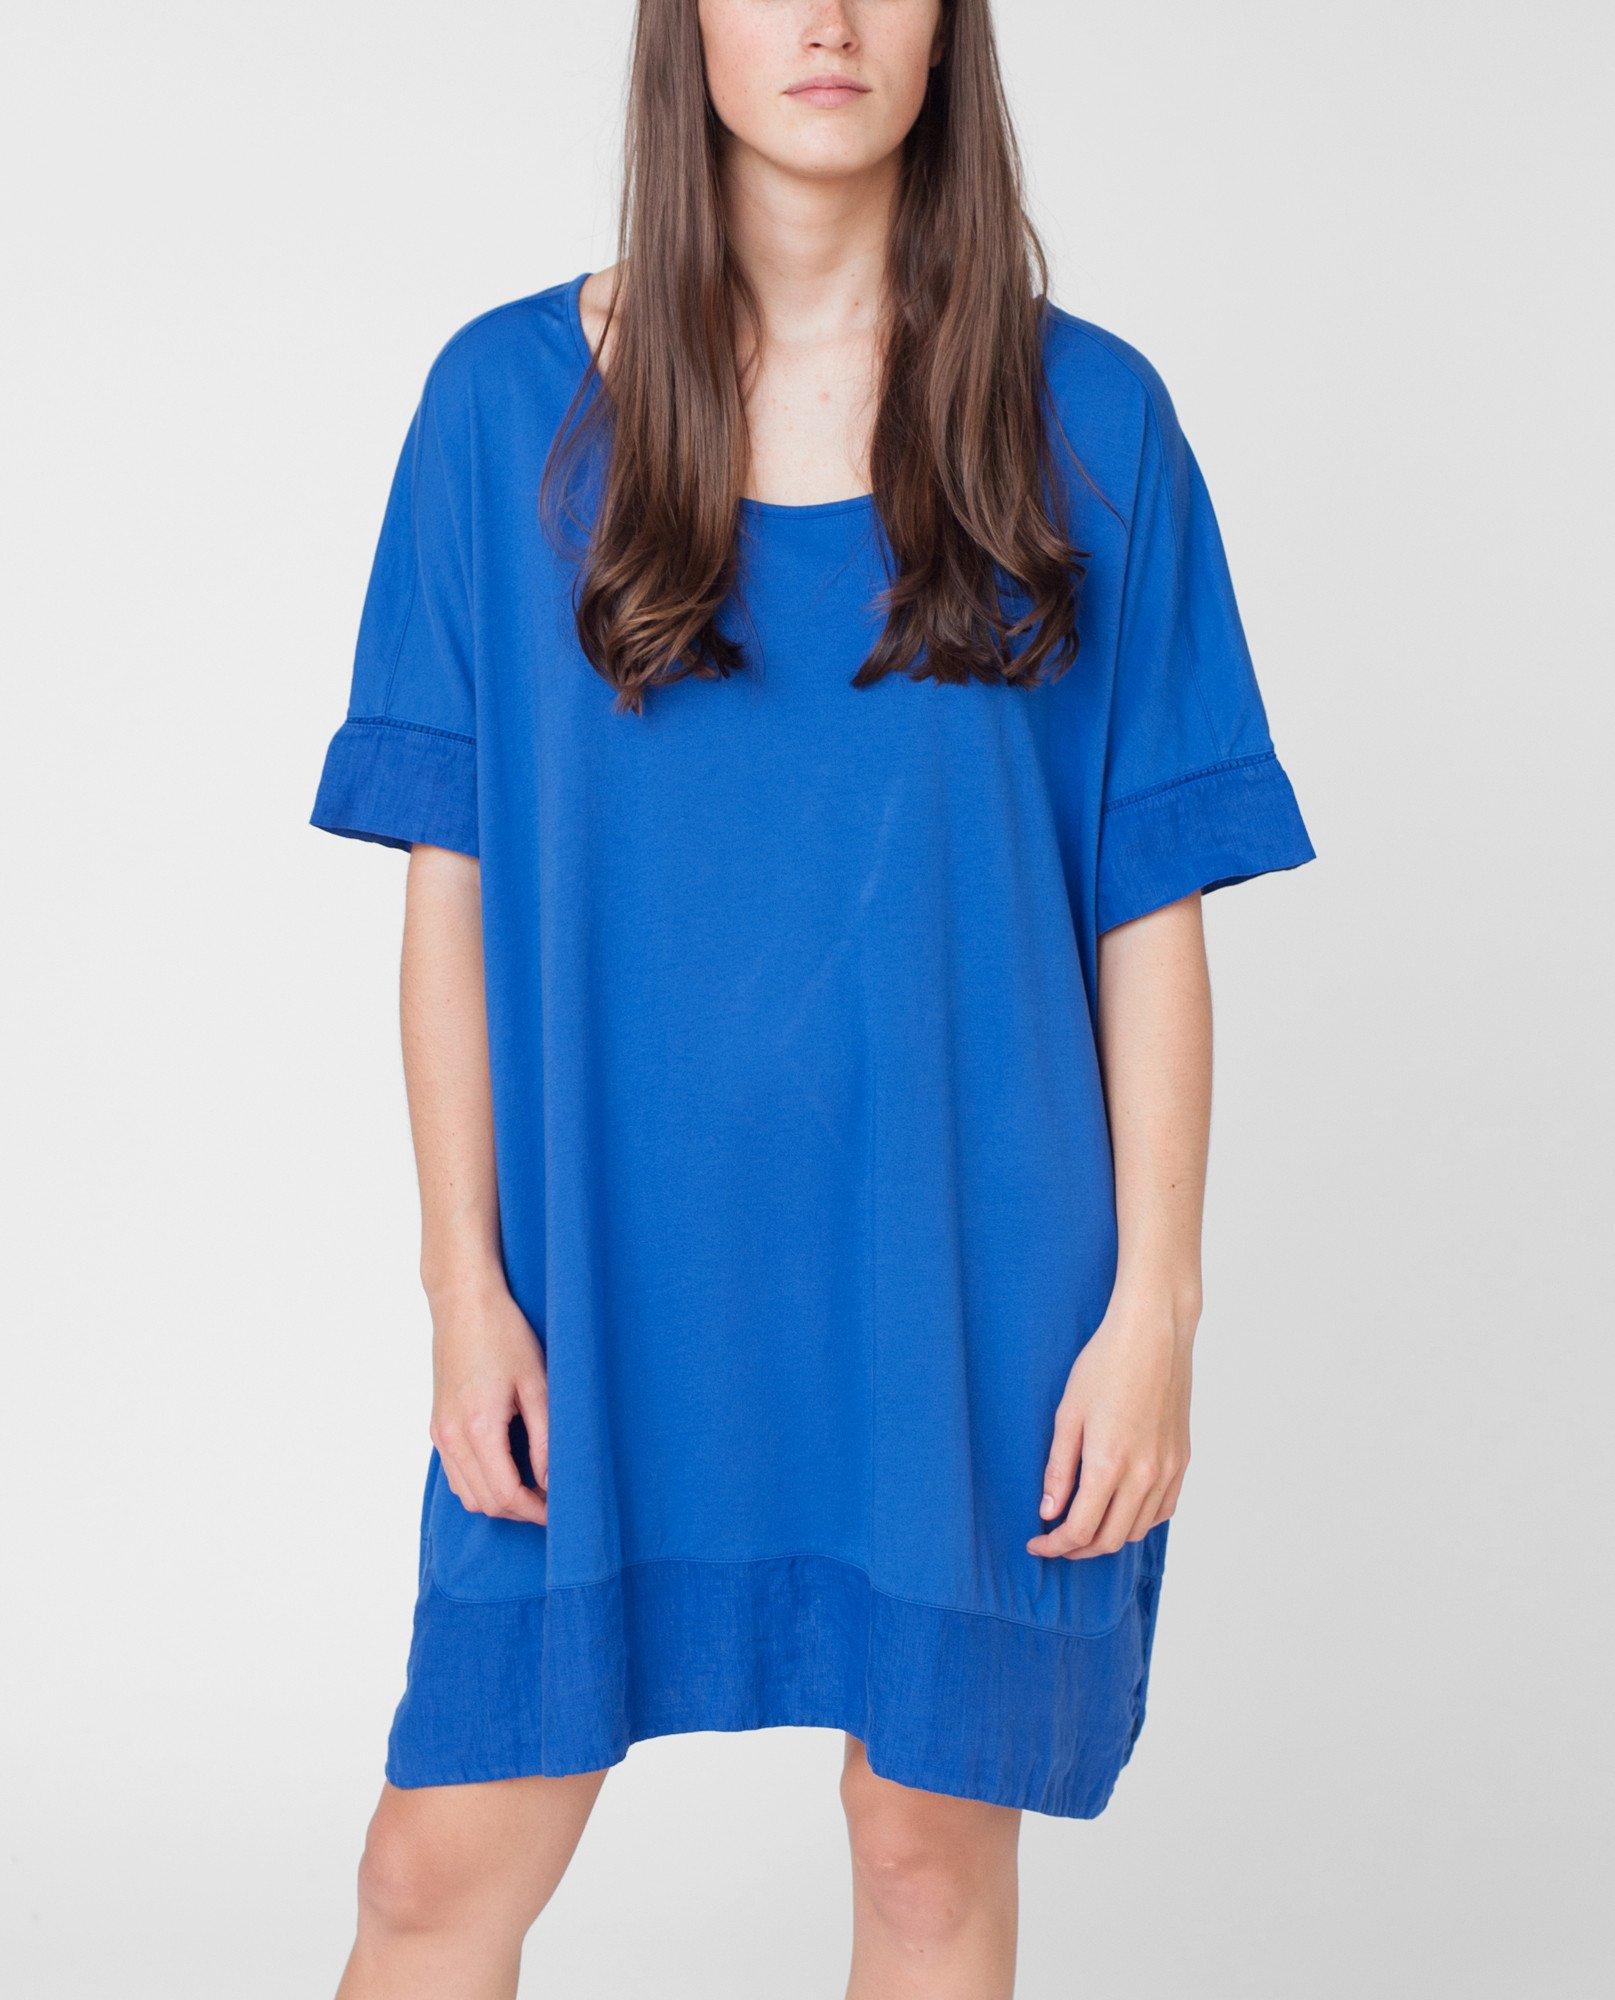 CIEL Organic Cotton And Linen Top from Beaumont Organic